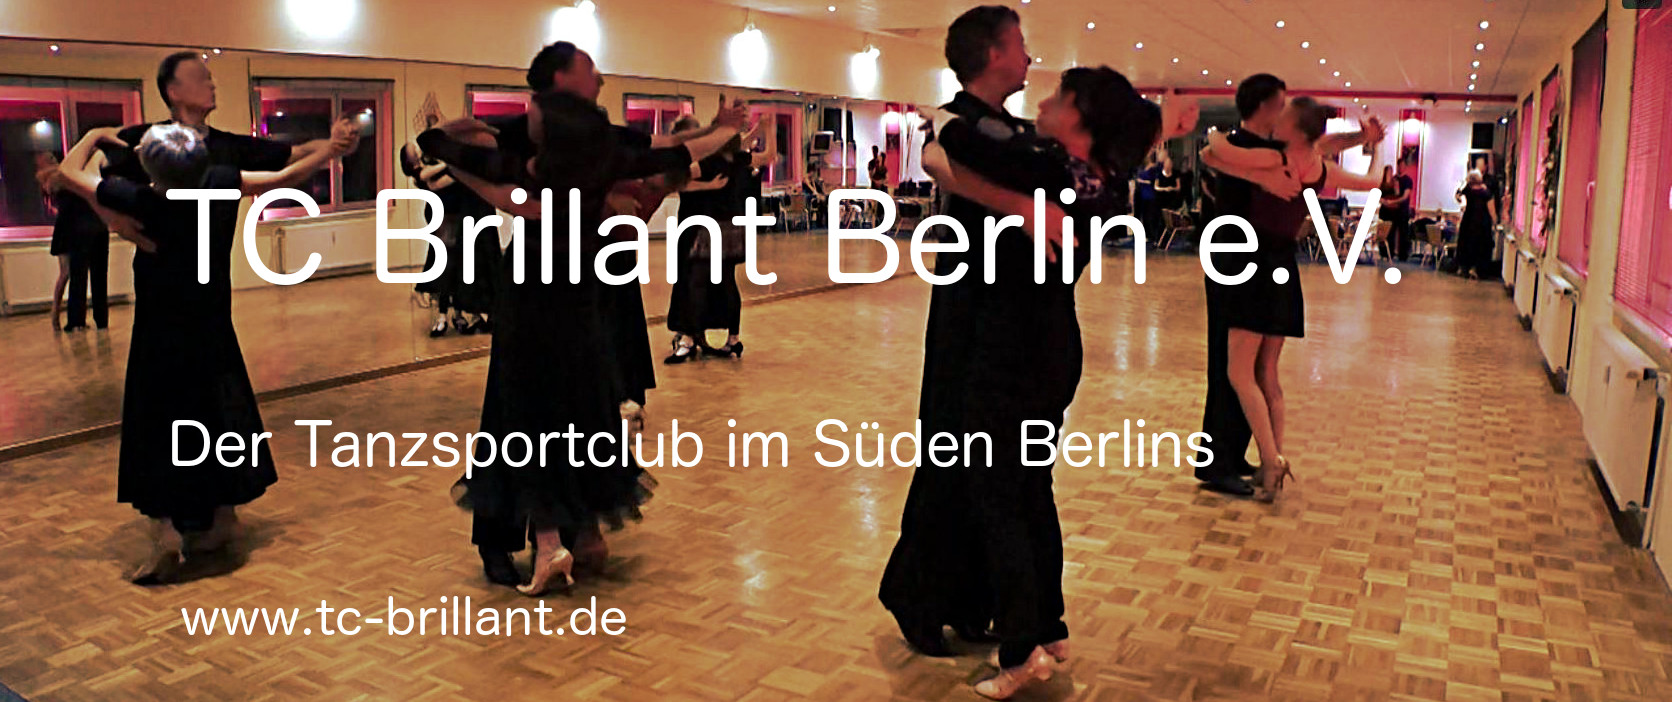 TC Brillant Berlin e.V.